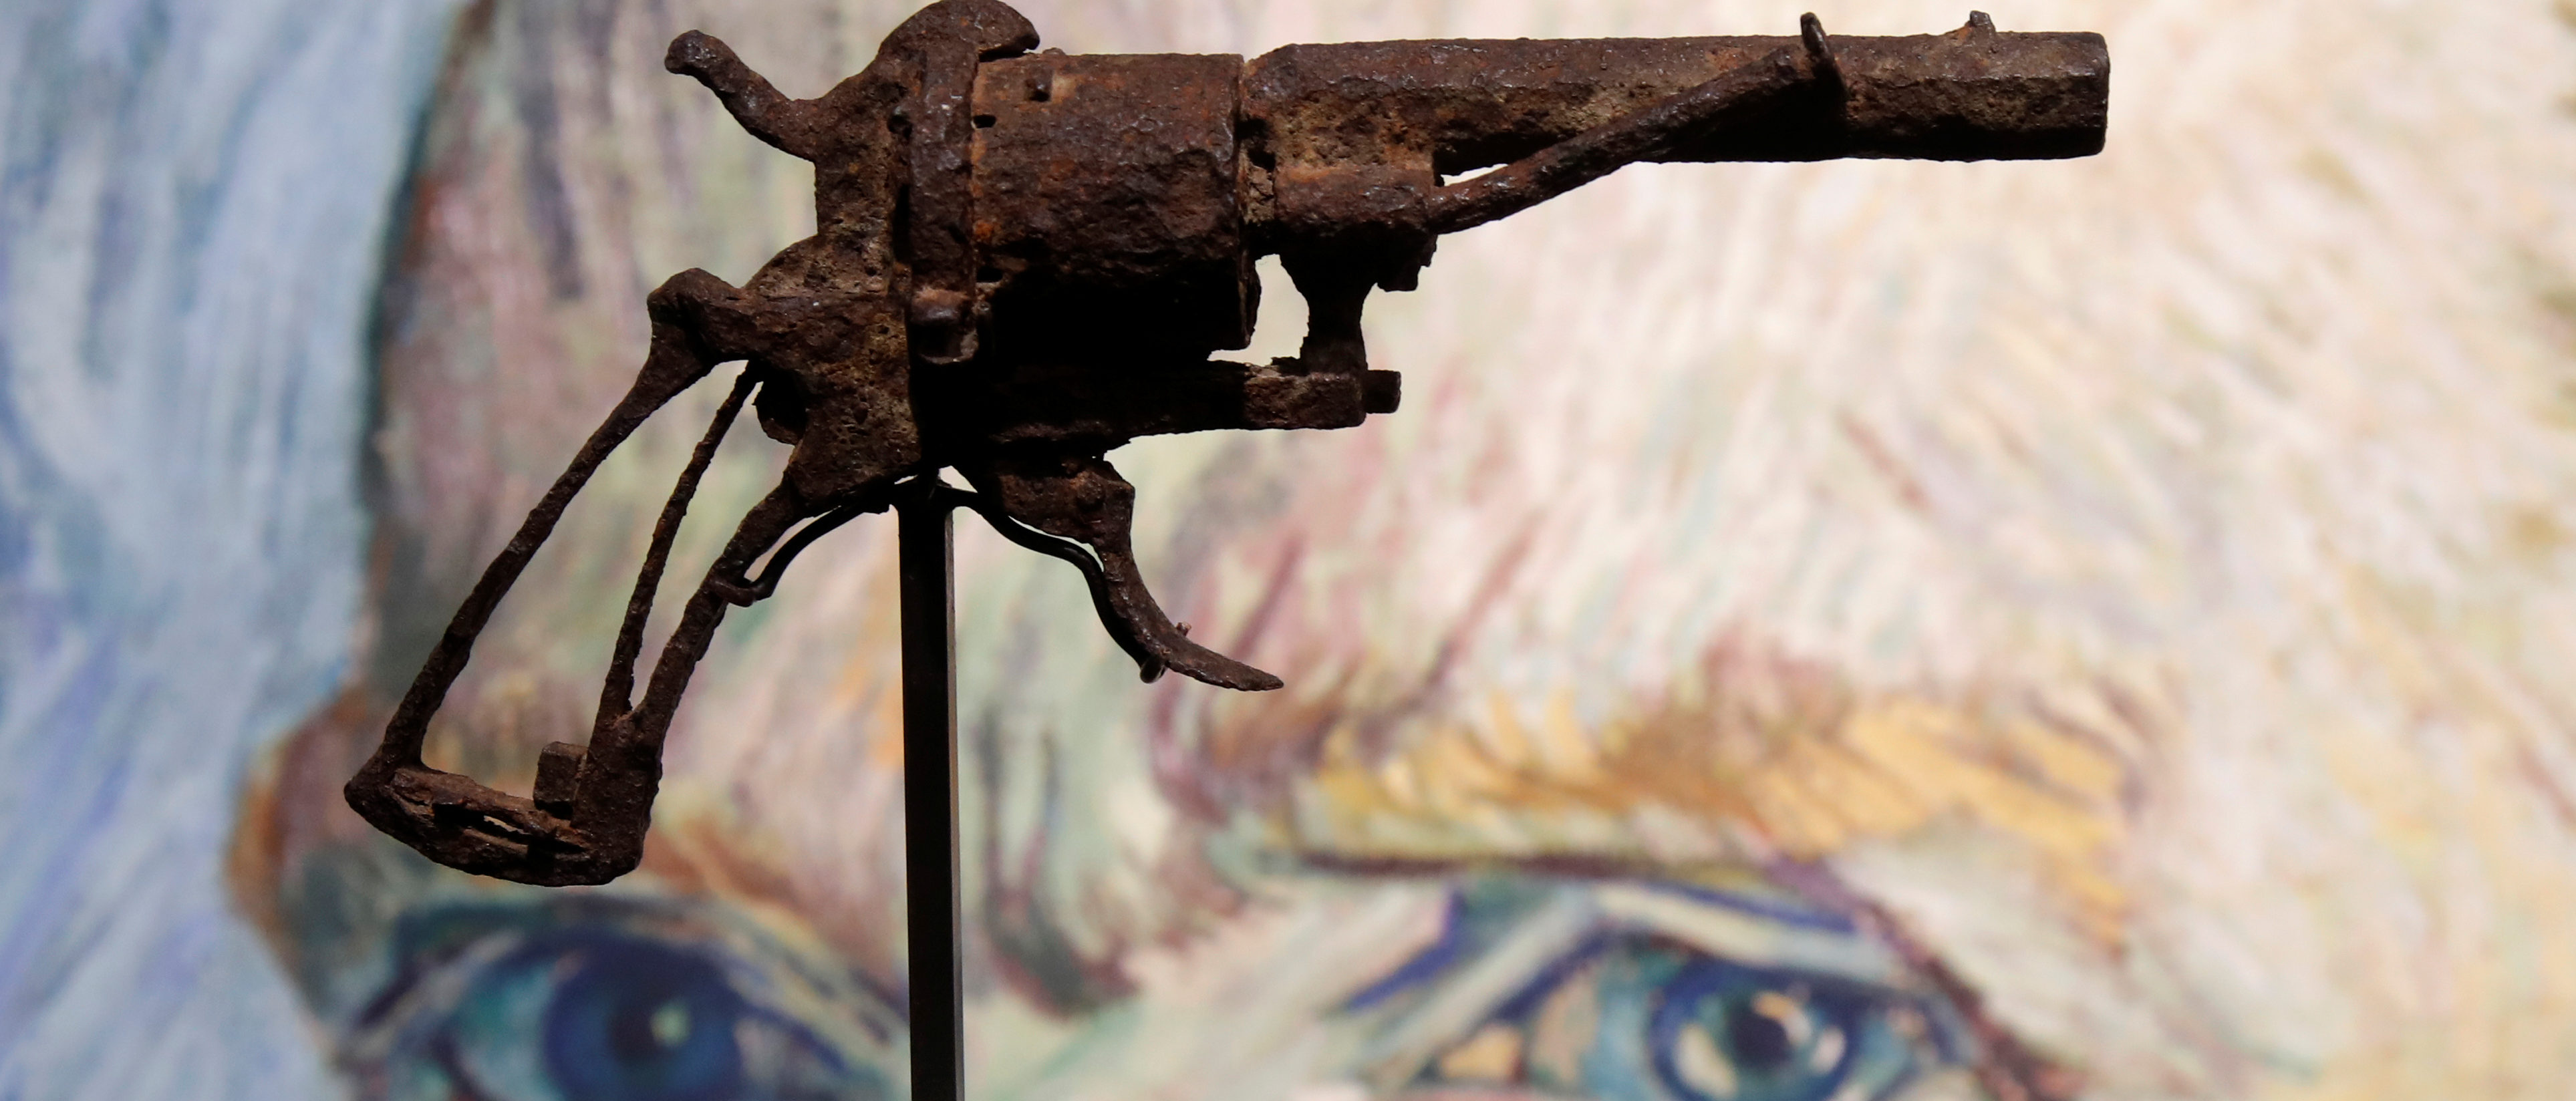 Revolver Van Gogh Likely Used To Kill Himself Goes On Auction Block